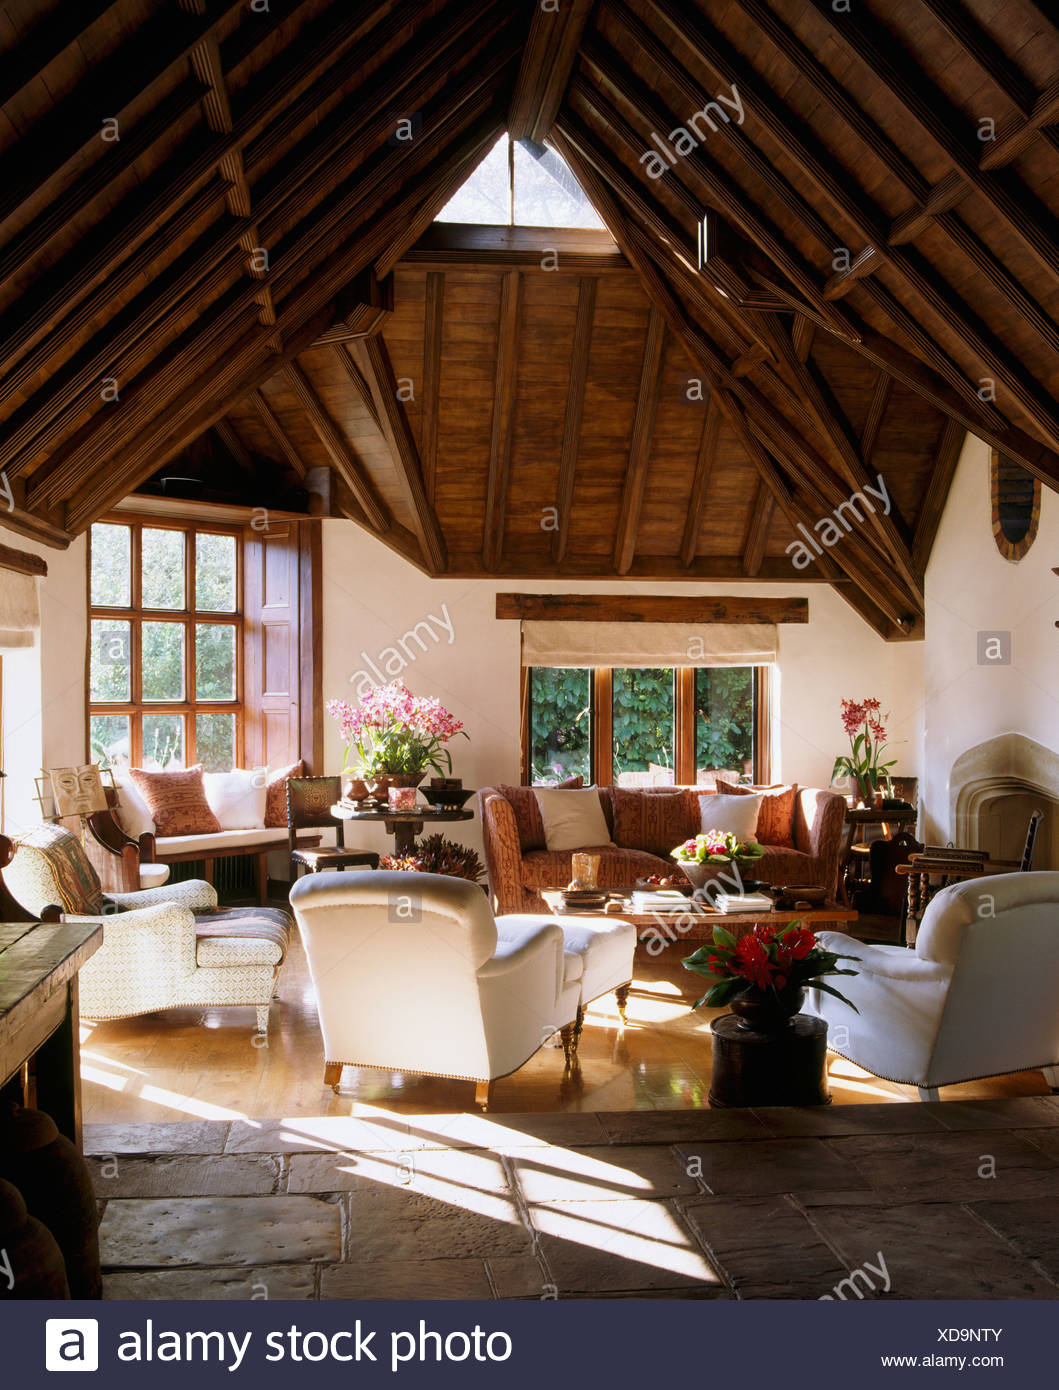 High, vaulted beamed roof in large barn conversion sitting room with white armchairs and sofa and flagstone and wooden floor - Stock Image